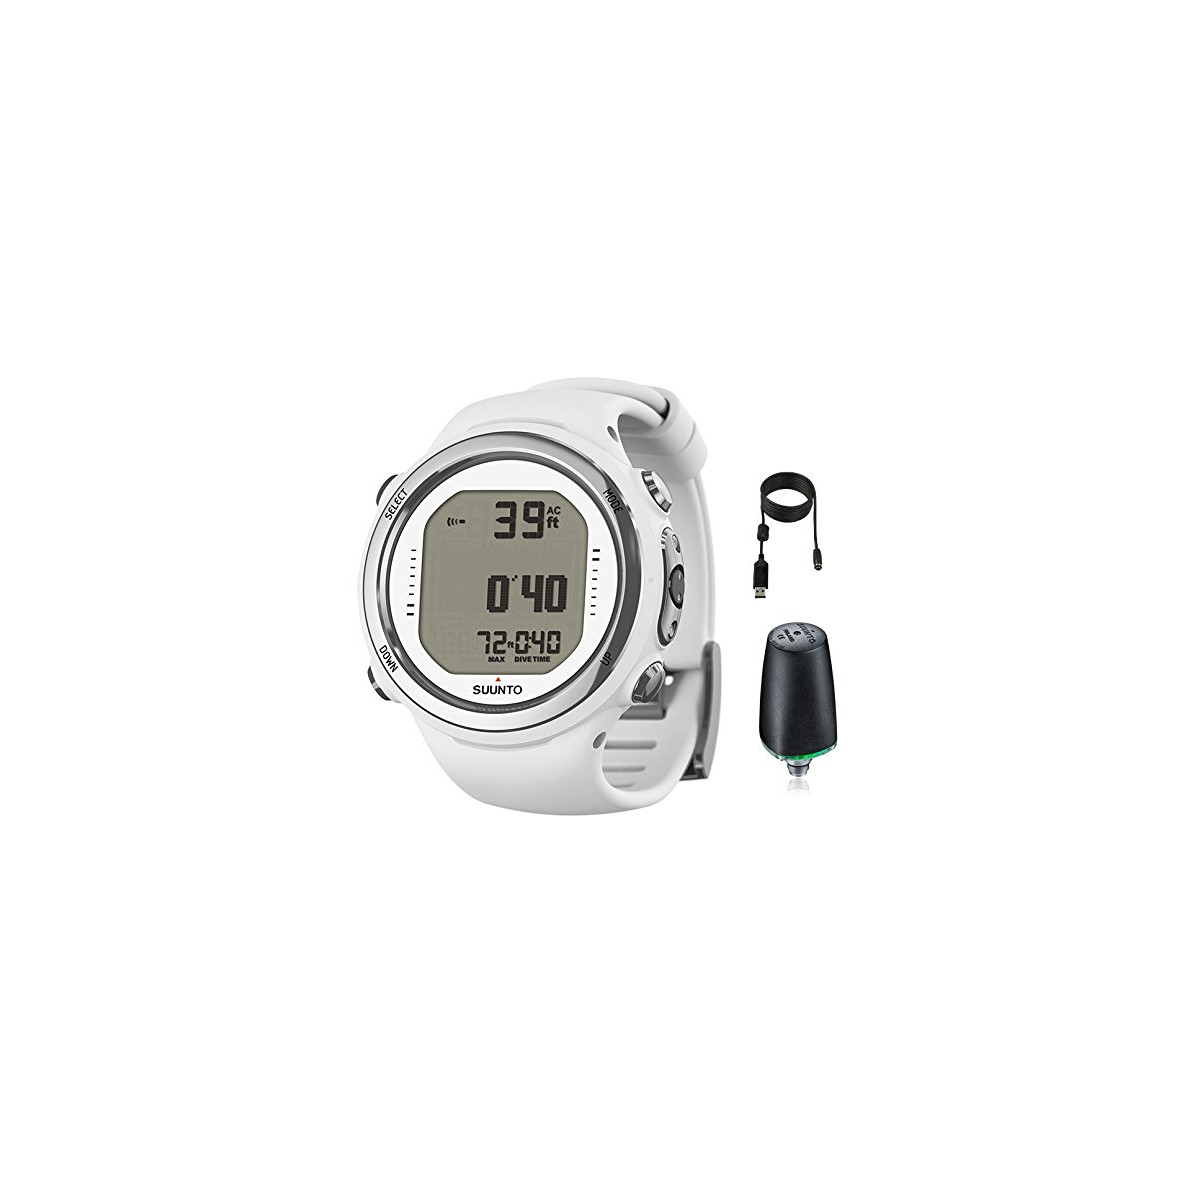 Suunto D4i Novo Watch Dive Computer with Transmitter USB PC Download Kit